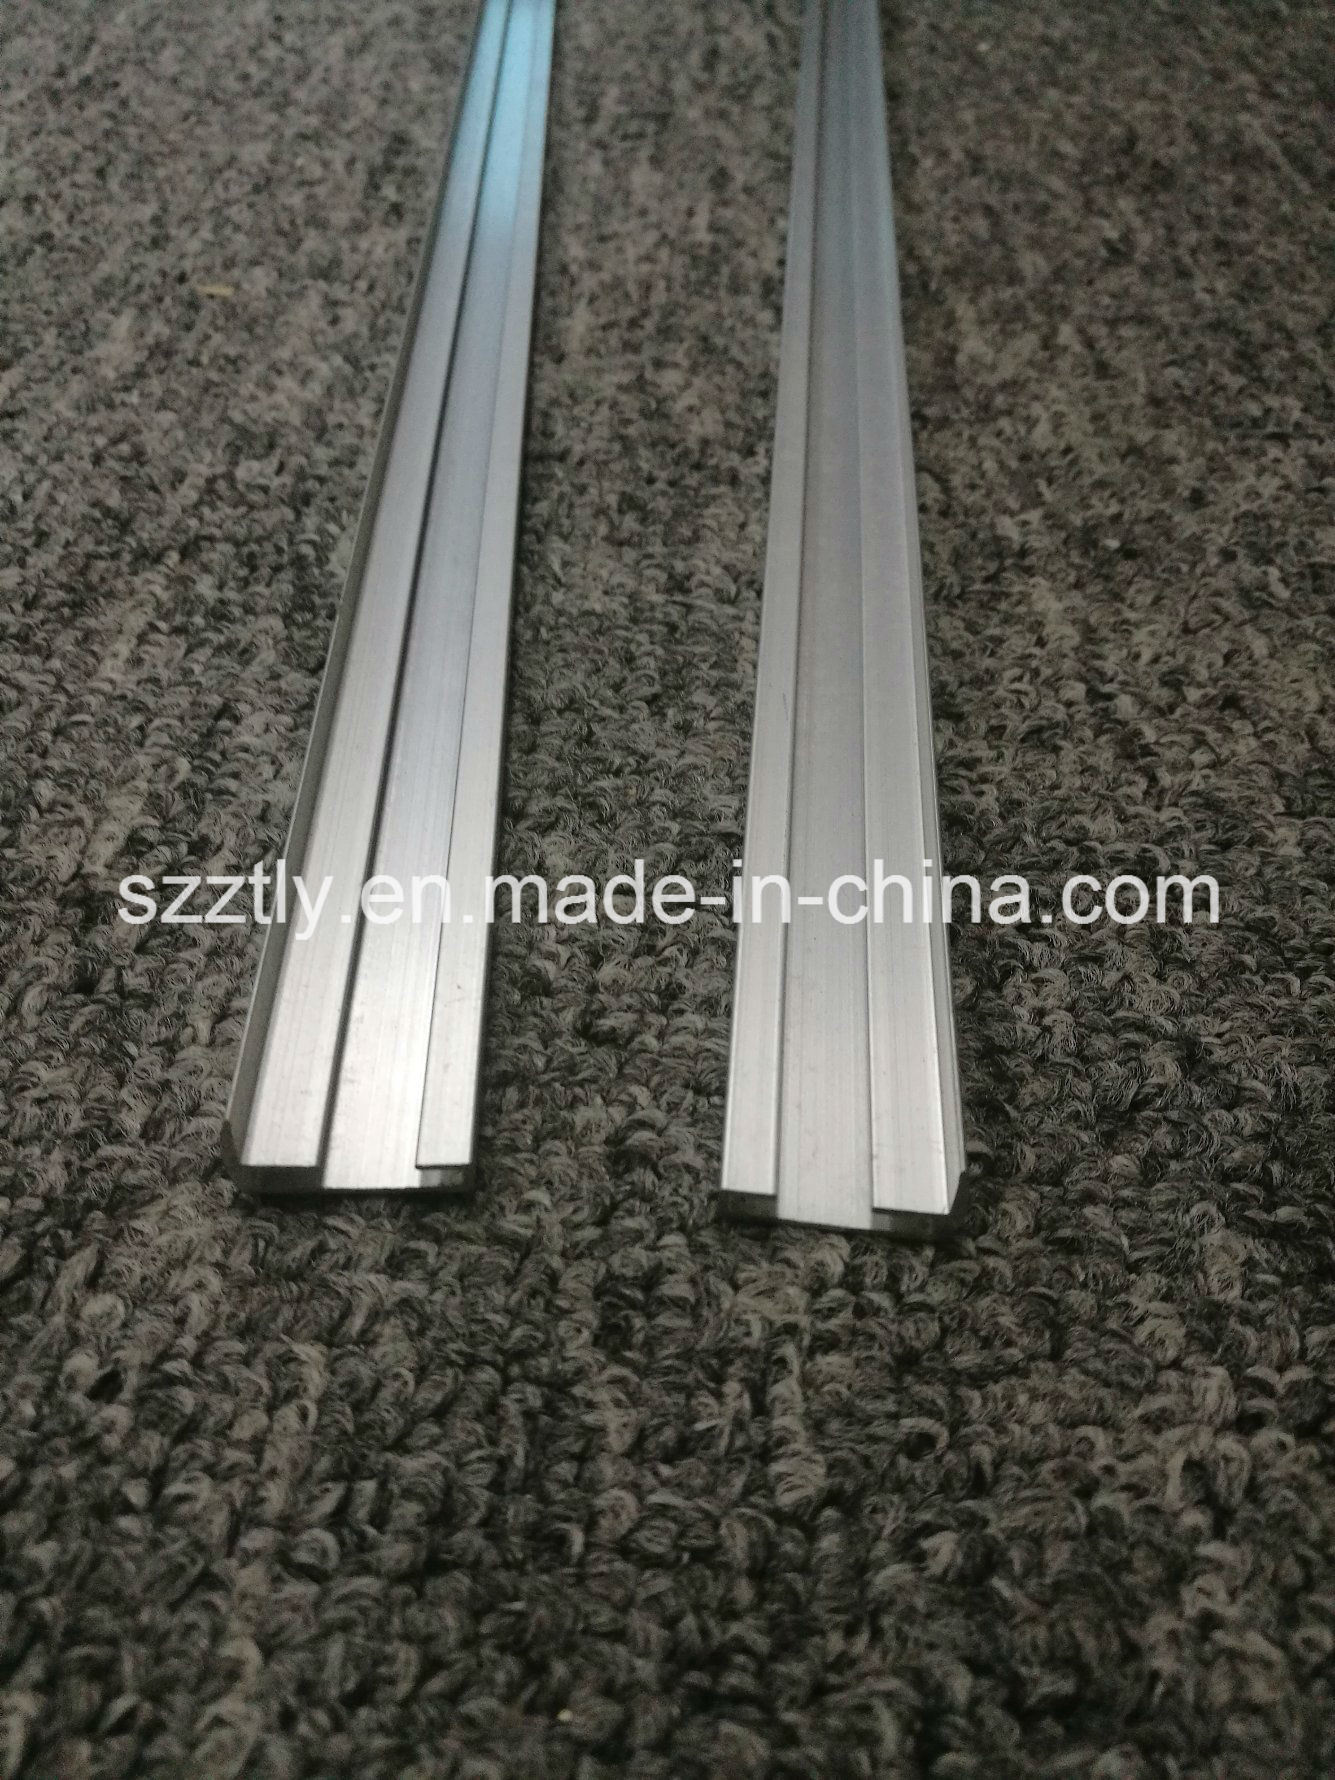 Aluminum Extrusion Profiles for Office Desk /Table Partion